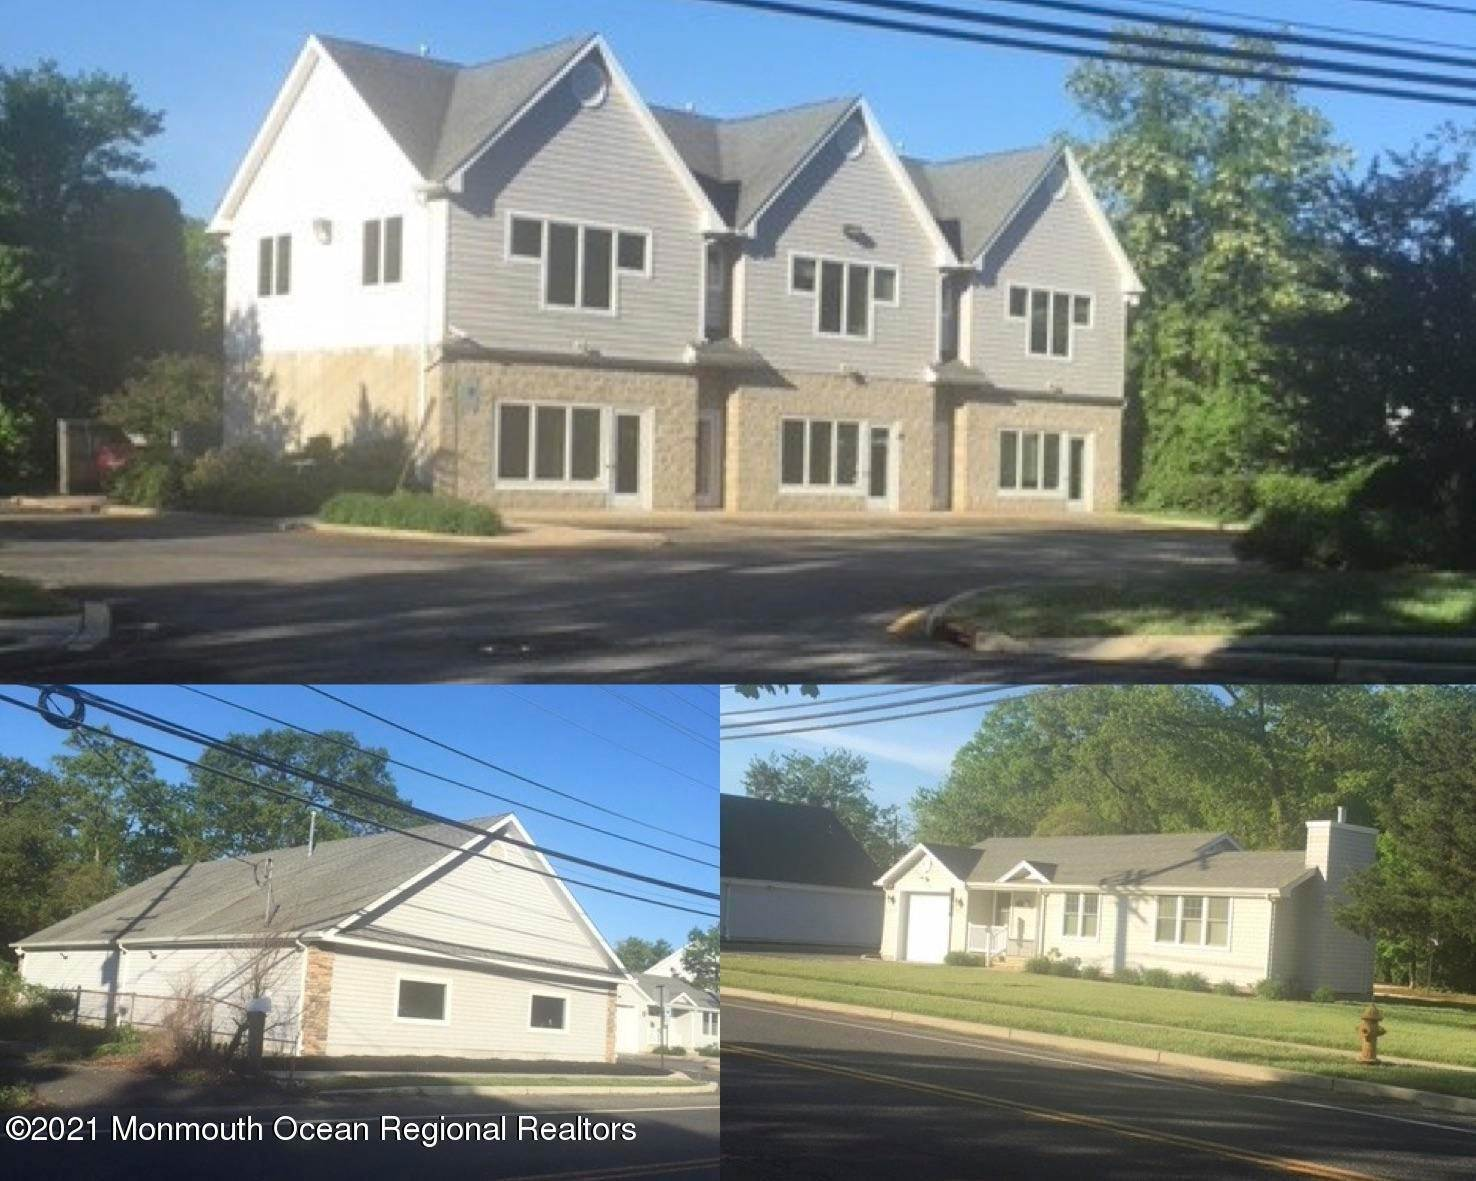 Property for Sale at 301 Drum Point Road Brick, New Jersey 08723 United States